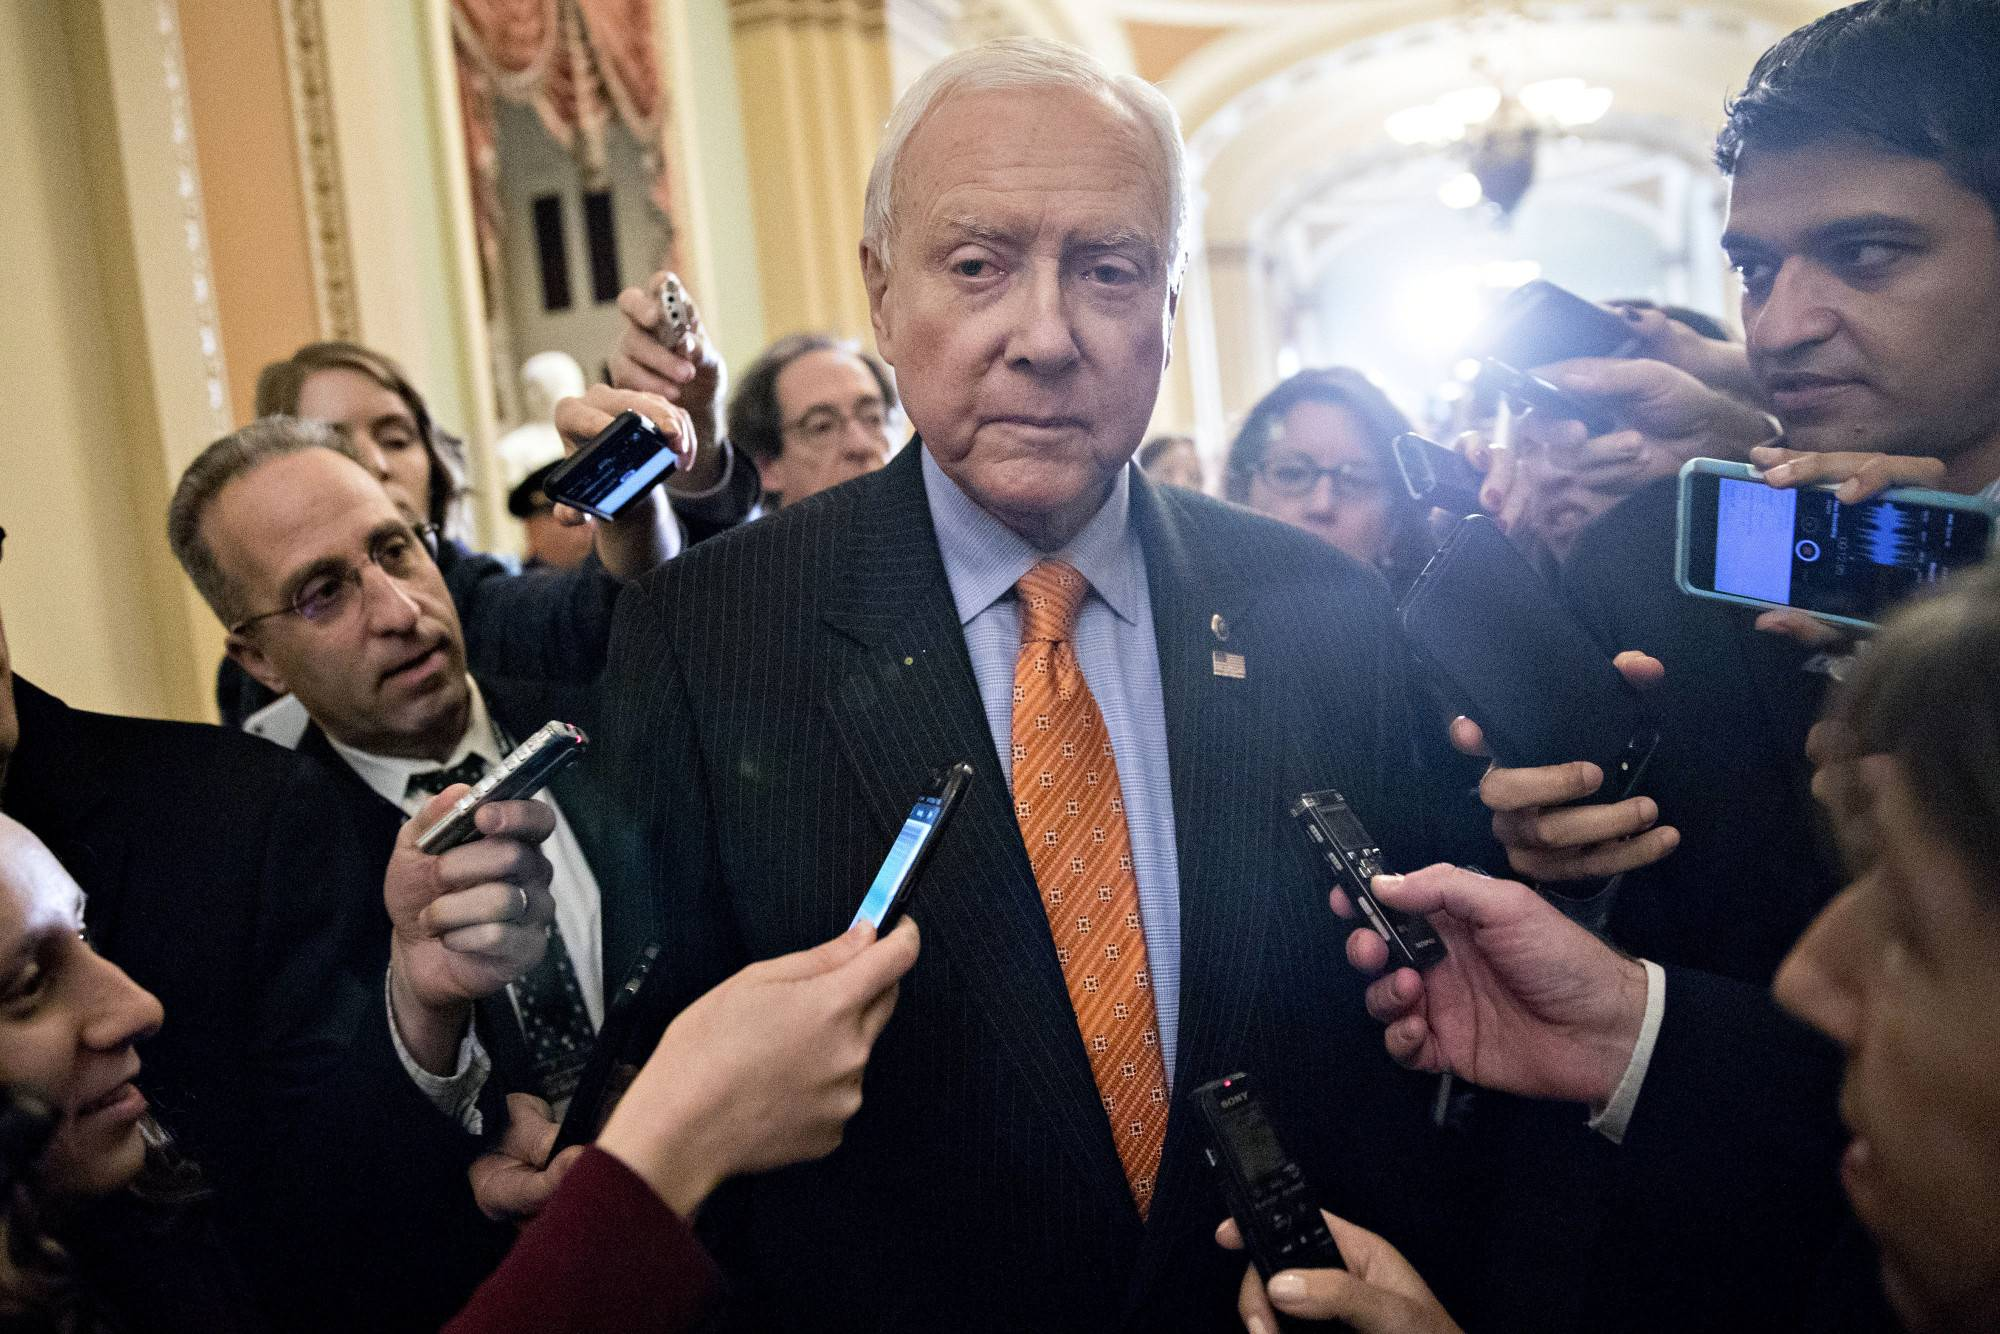 Sen. Orrin Hatch, a Utah Republican and chairman of the Senate Finance Committee, says he will not seek re-election.